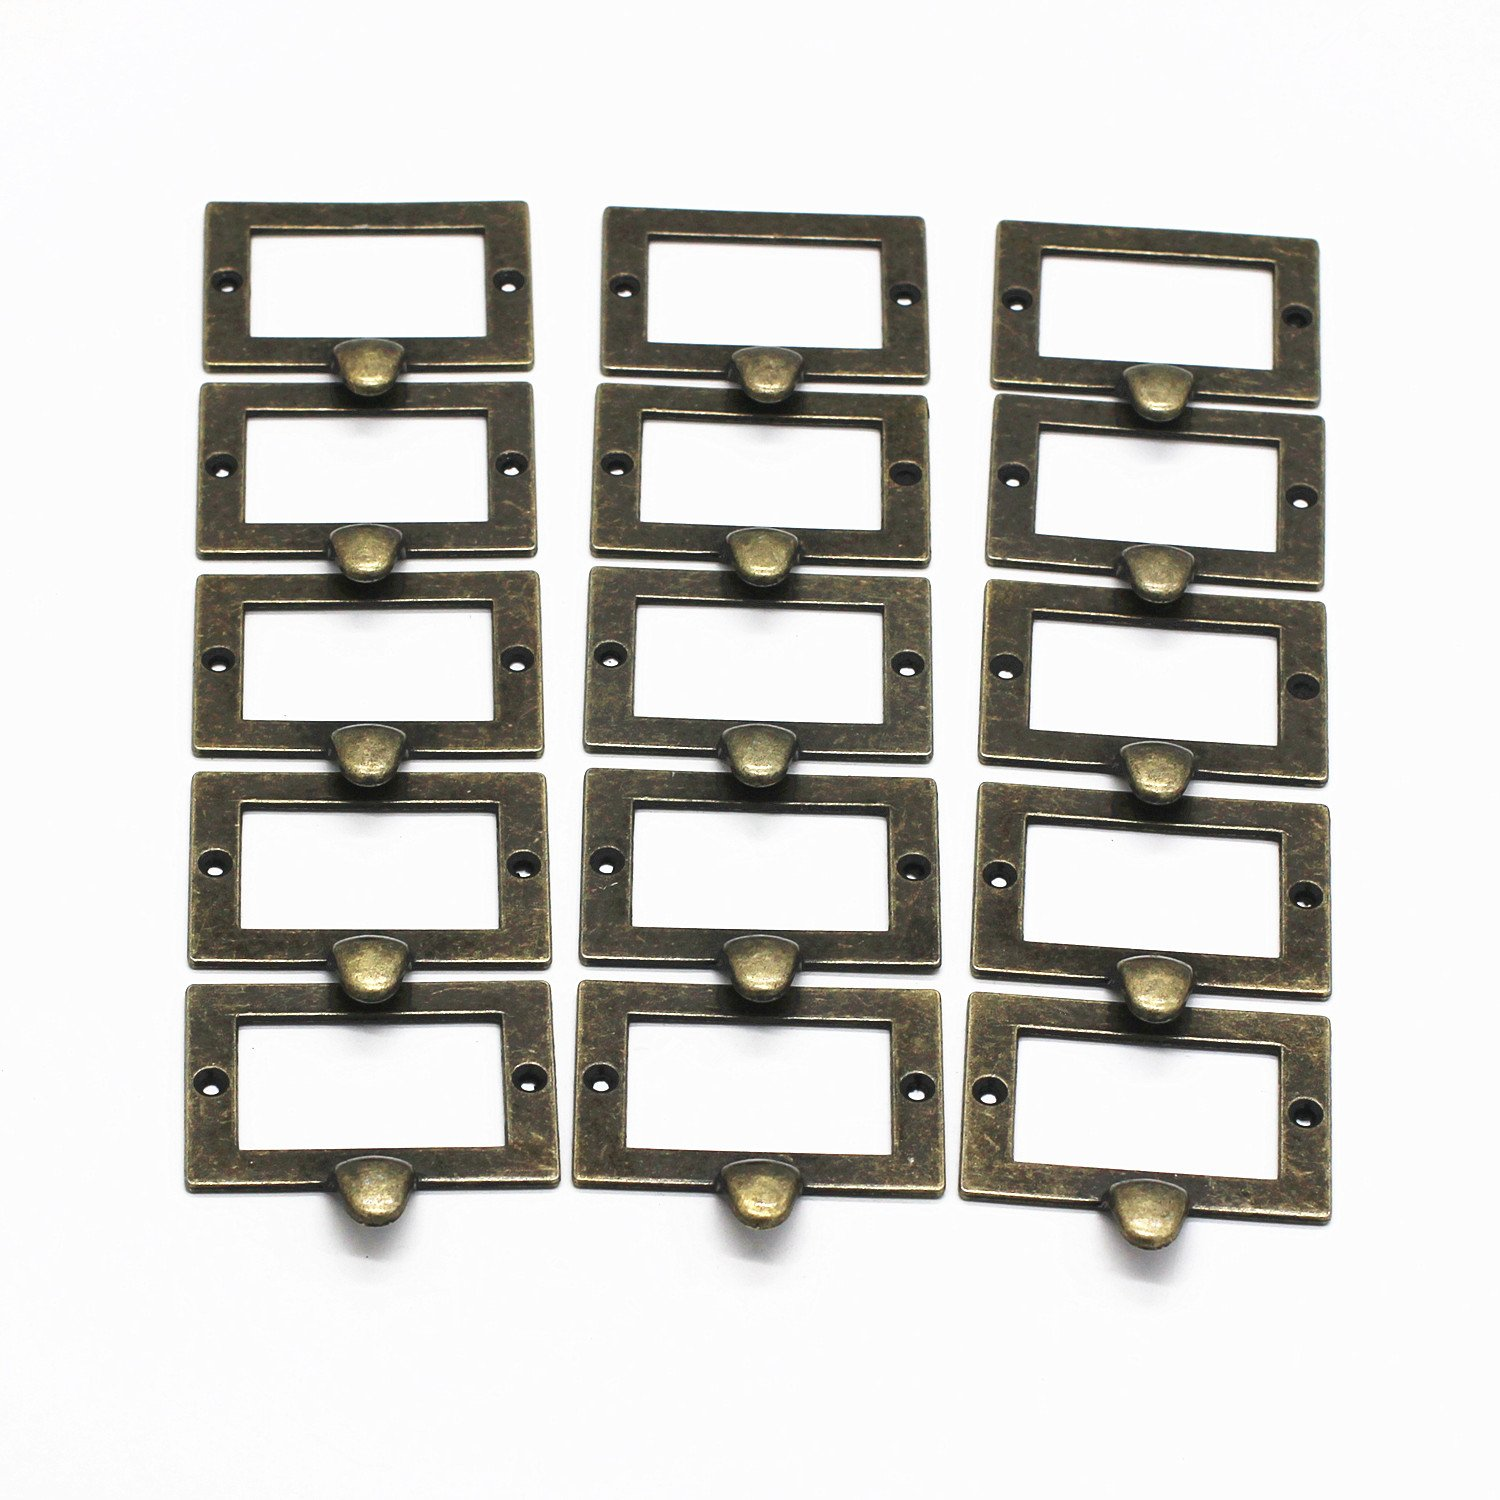 WEICHUAN 15 Pieces 72mm68mm Card Holder Drawer Pull/Label Frames Card/Label Holder/Tag Pull/Cabinet Frame Handle/File Name Card Holder - Metal Art Bronze Tone with Screws by WEICHUAN